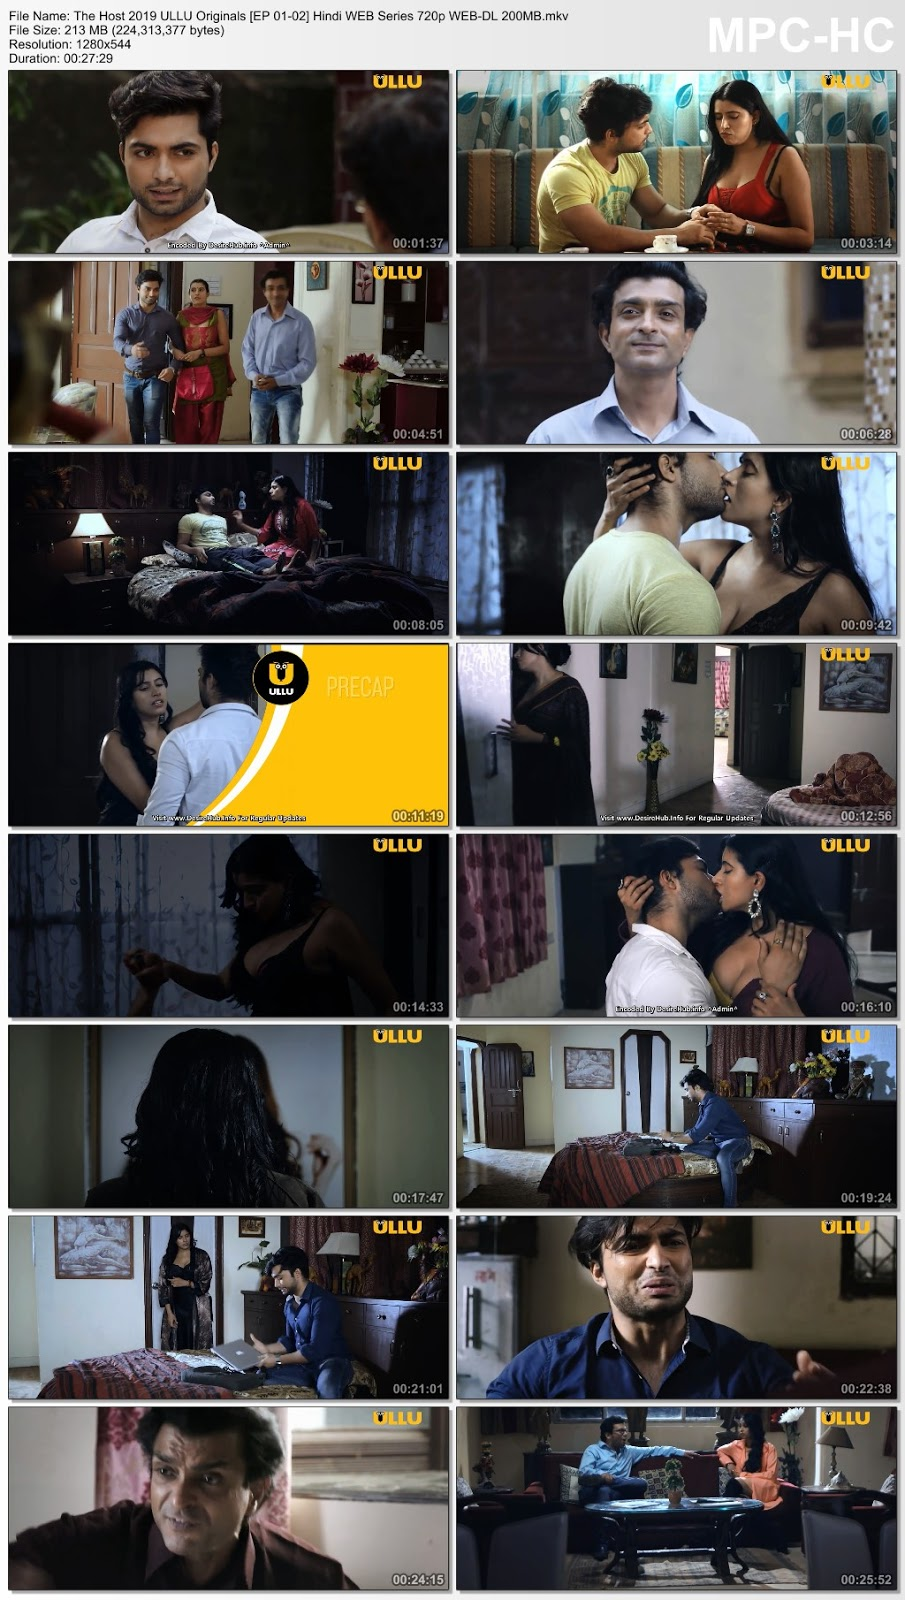 The Host 2019 ULLU Originals Hindi WEB Series 720p WEB-DL 200MB Desirehub